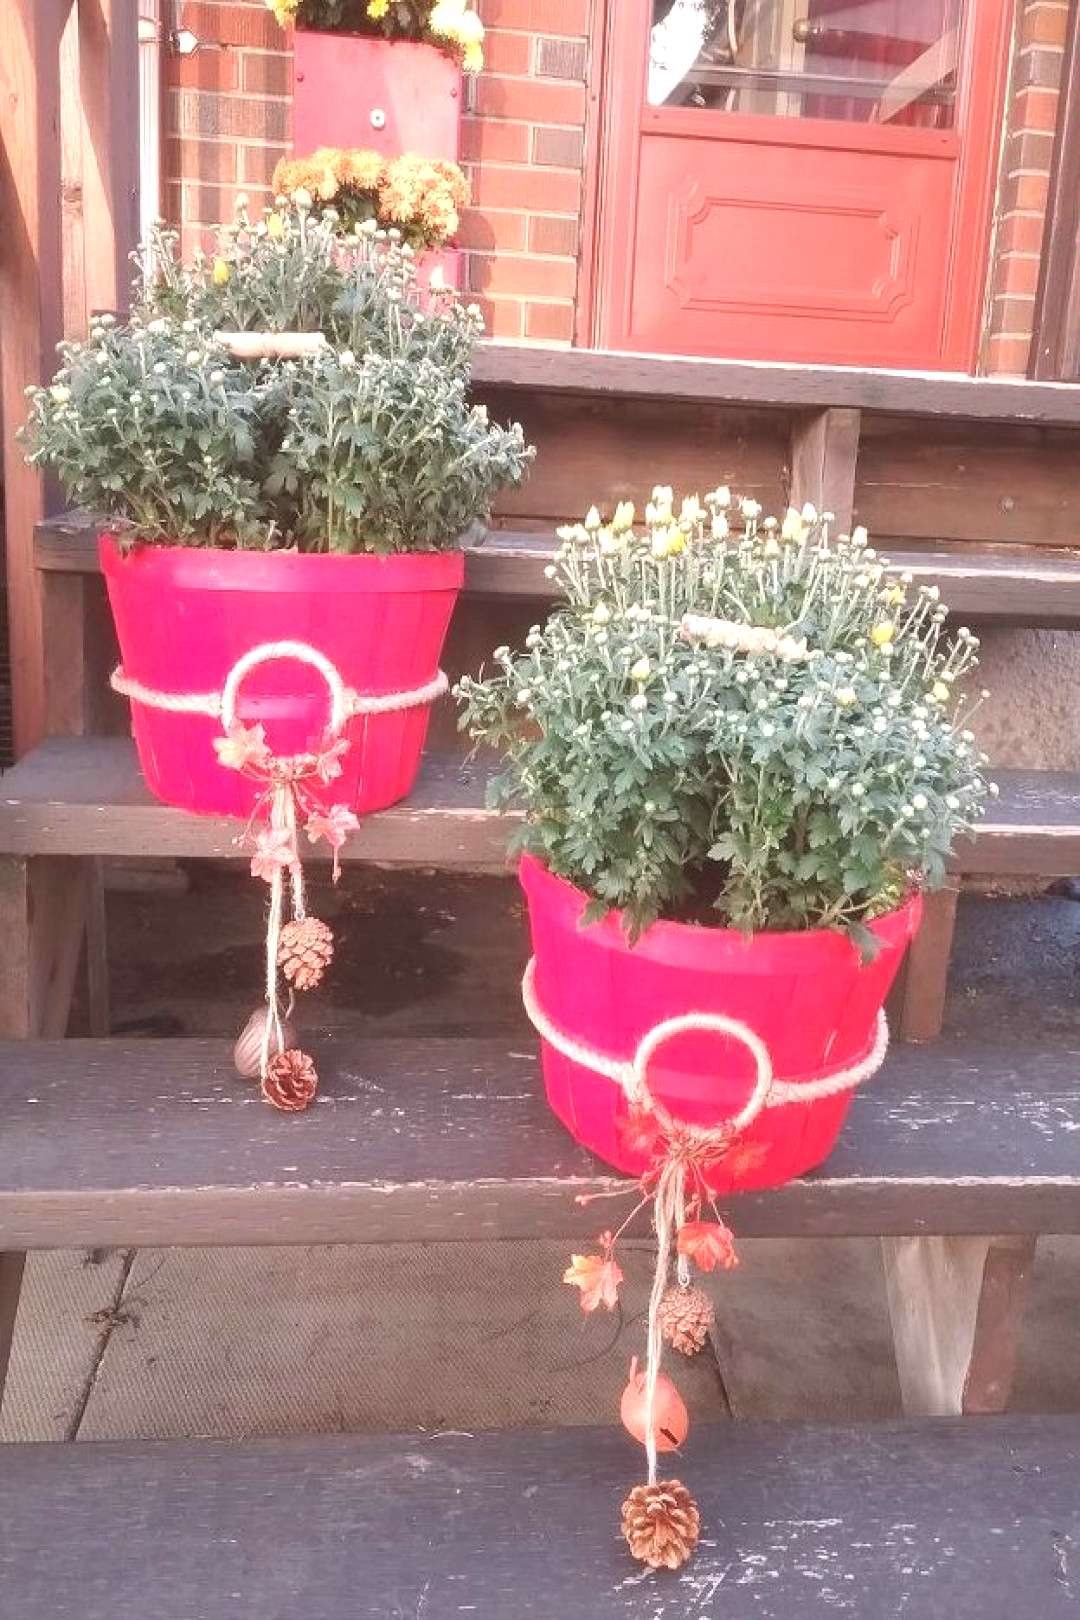 DIY Fall Planters -  Upcycle those apple baskets for the cutest planter idea!  -